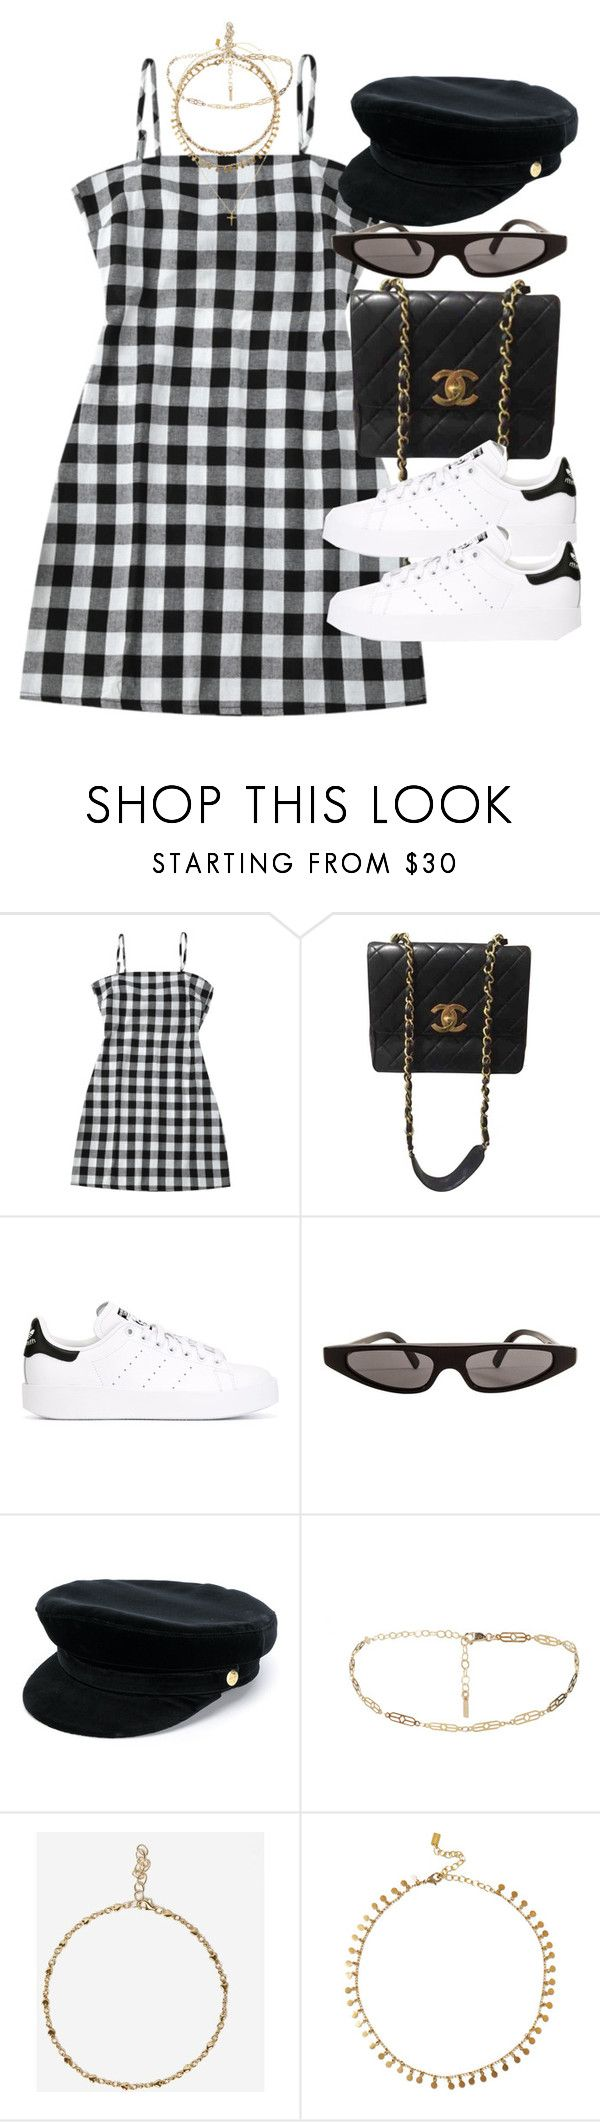 """""""Sin título #4638"""" by hellomissapple ❤ liked on Polyvore featuring Chanel, adidas Originals, Dolce&Gabbana, Manokhi and Chan Luu"""